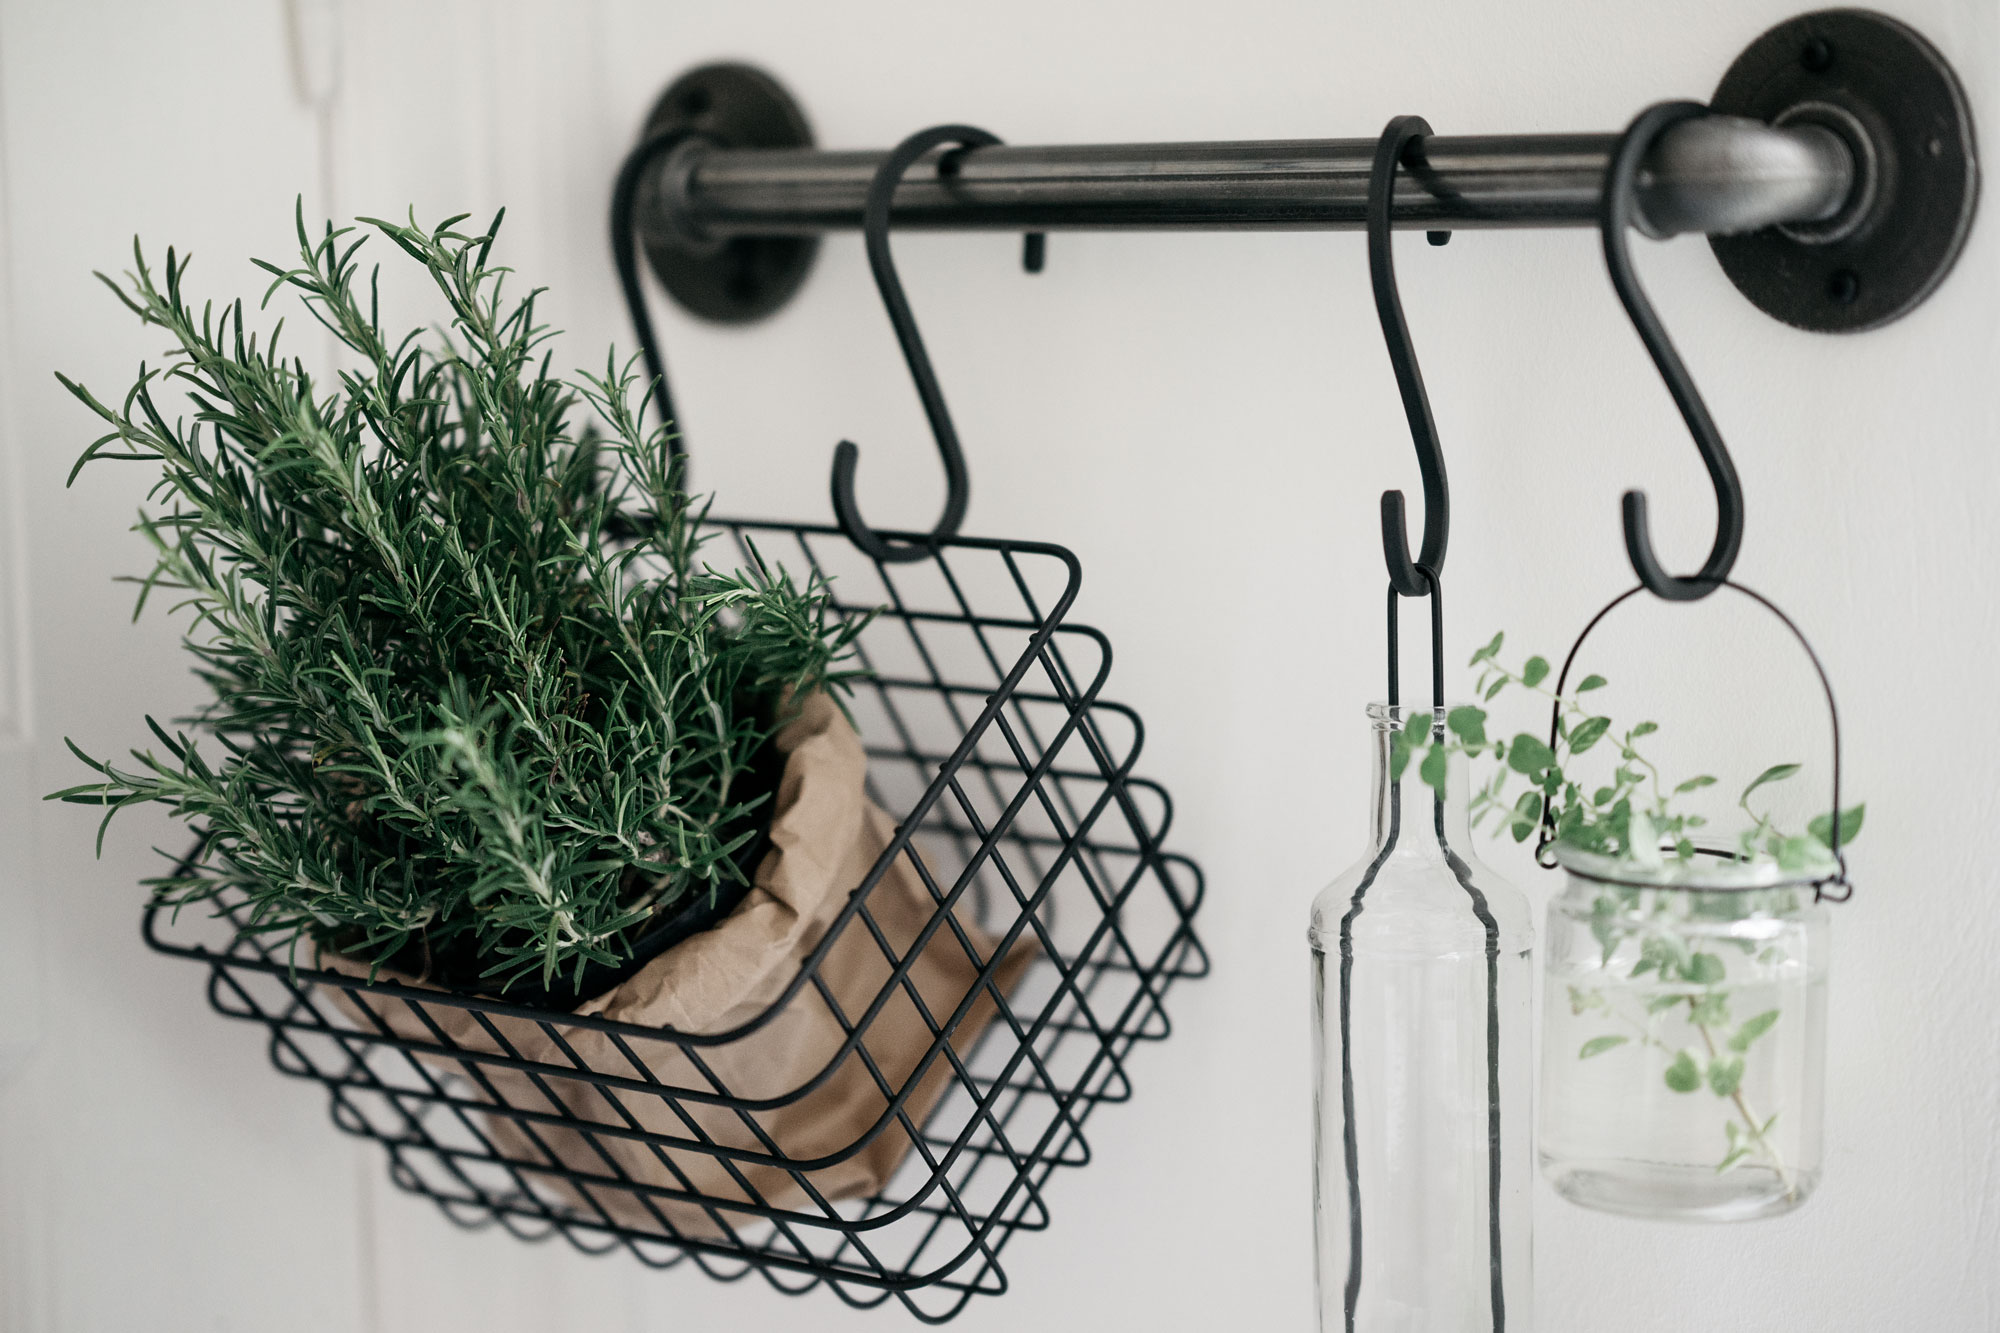 Rackbuddy clothing racks | DIY inspiration | build your own home garden of water pipes